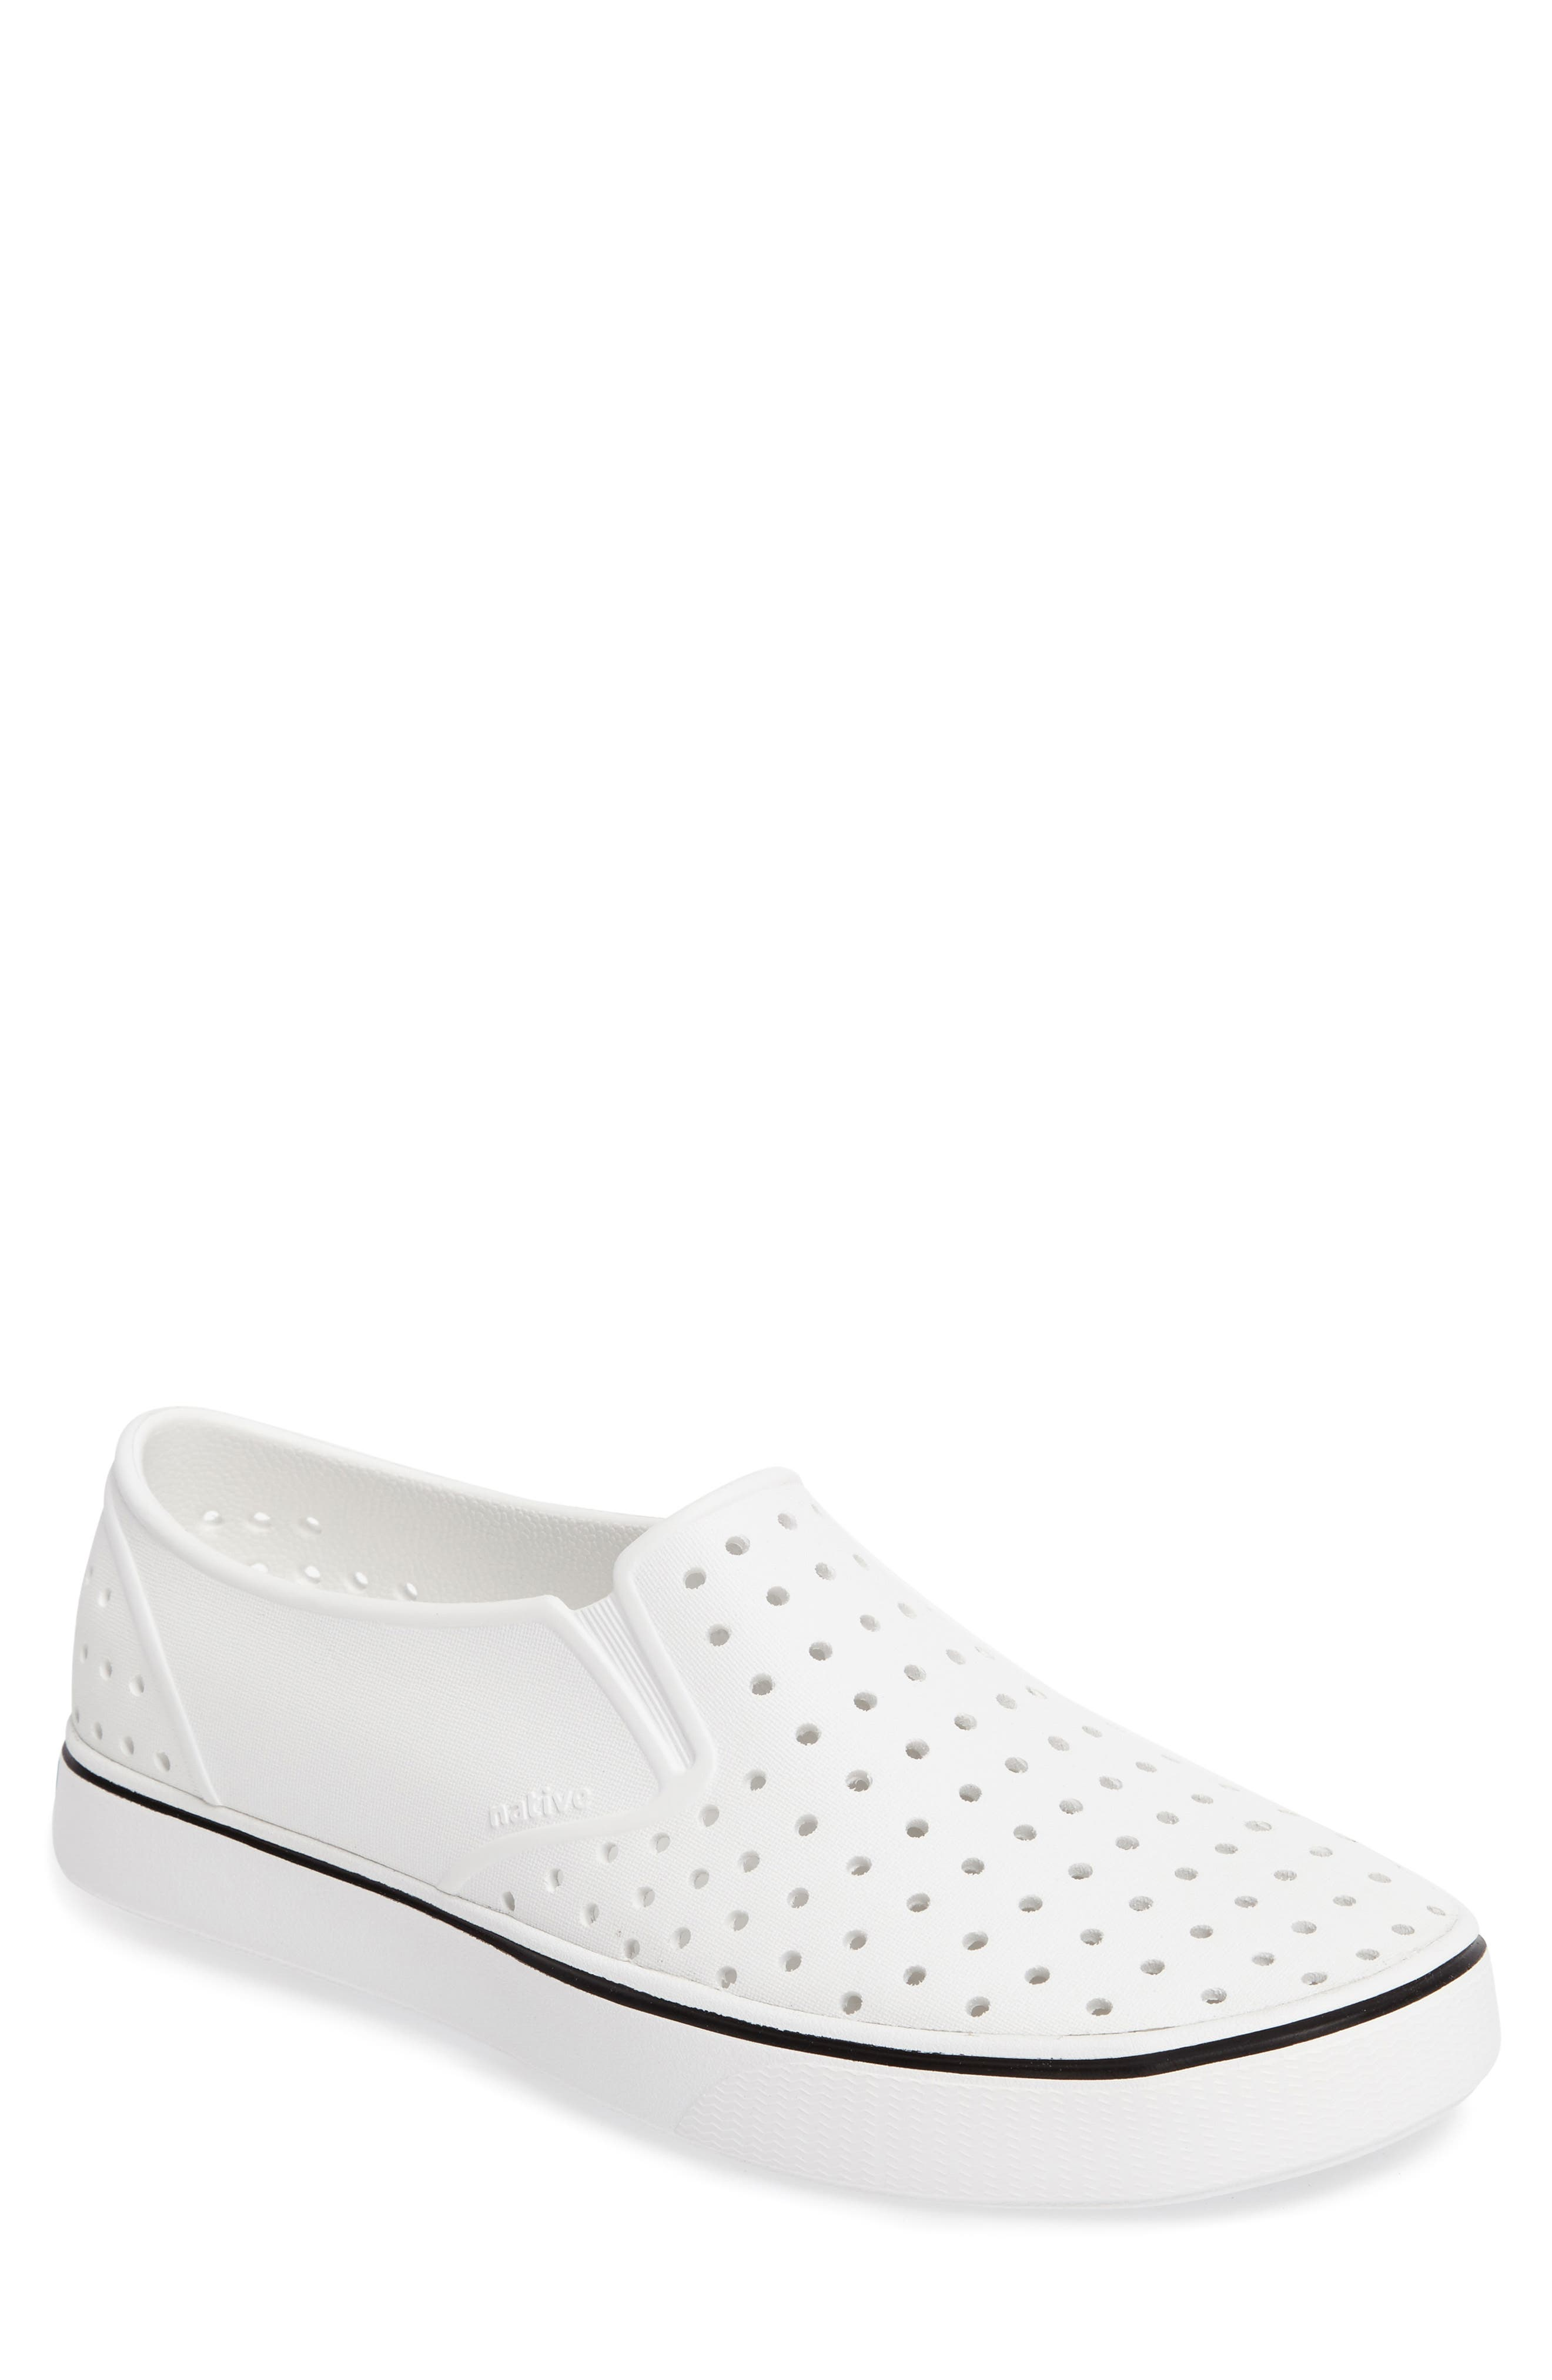 Native Shoes Miles Water Friendly Perforated Slip-On